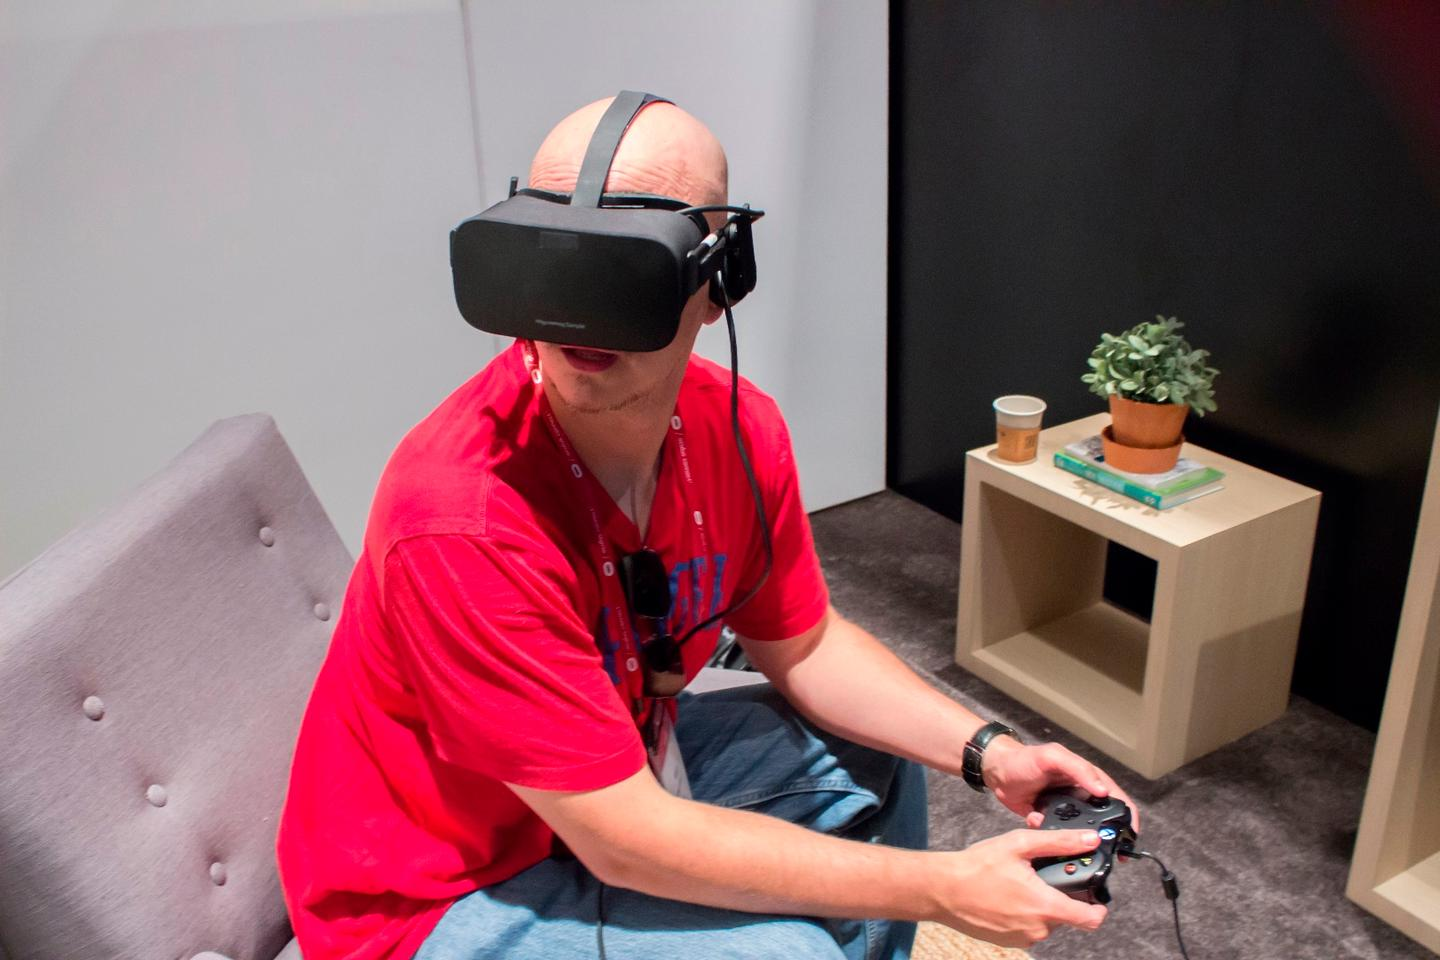 The Oculus Rift ships in March for $599